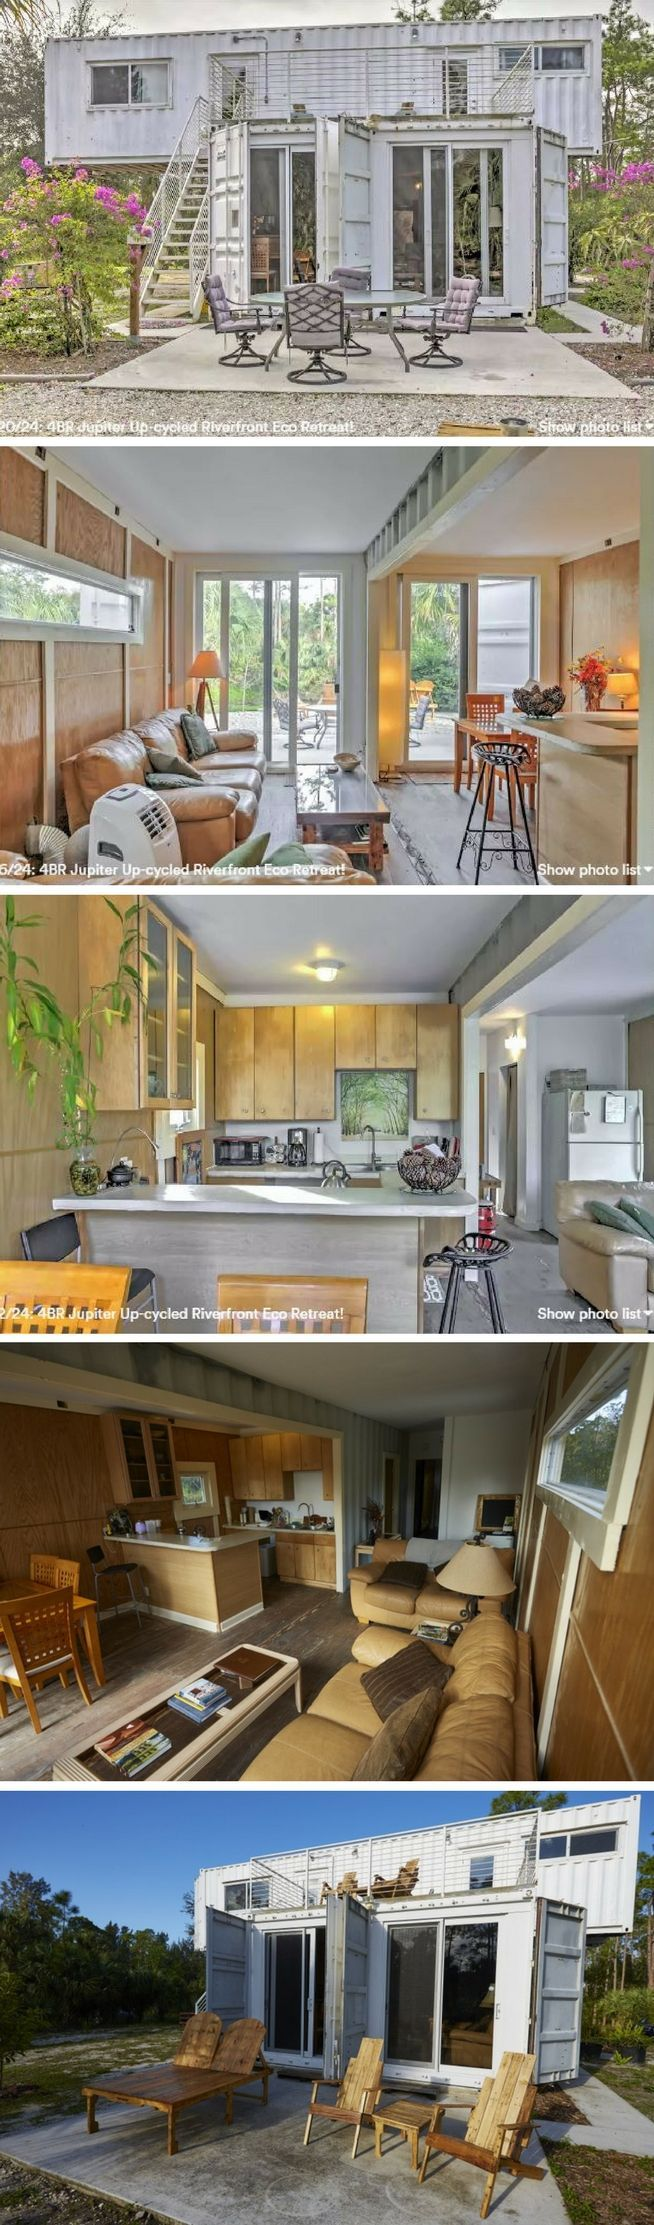 Eco retreat container home there are things you should do and